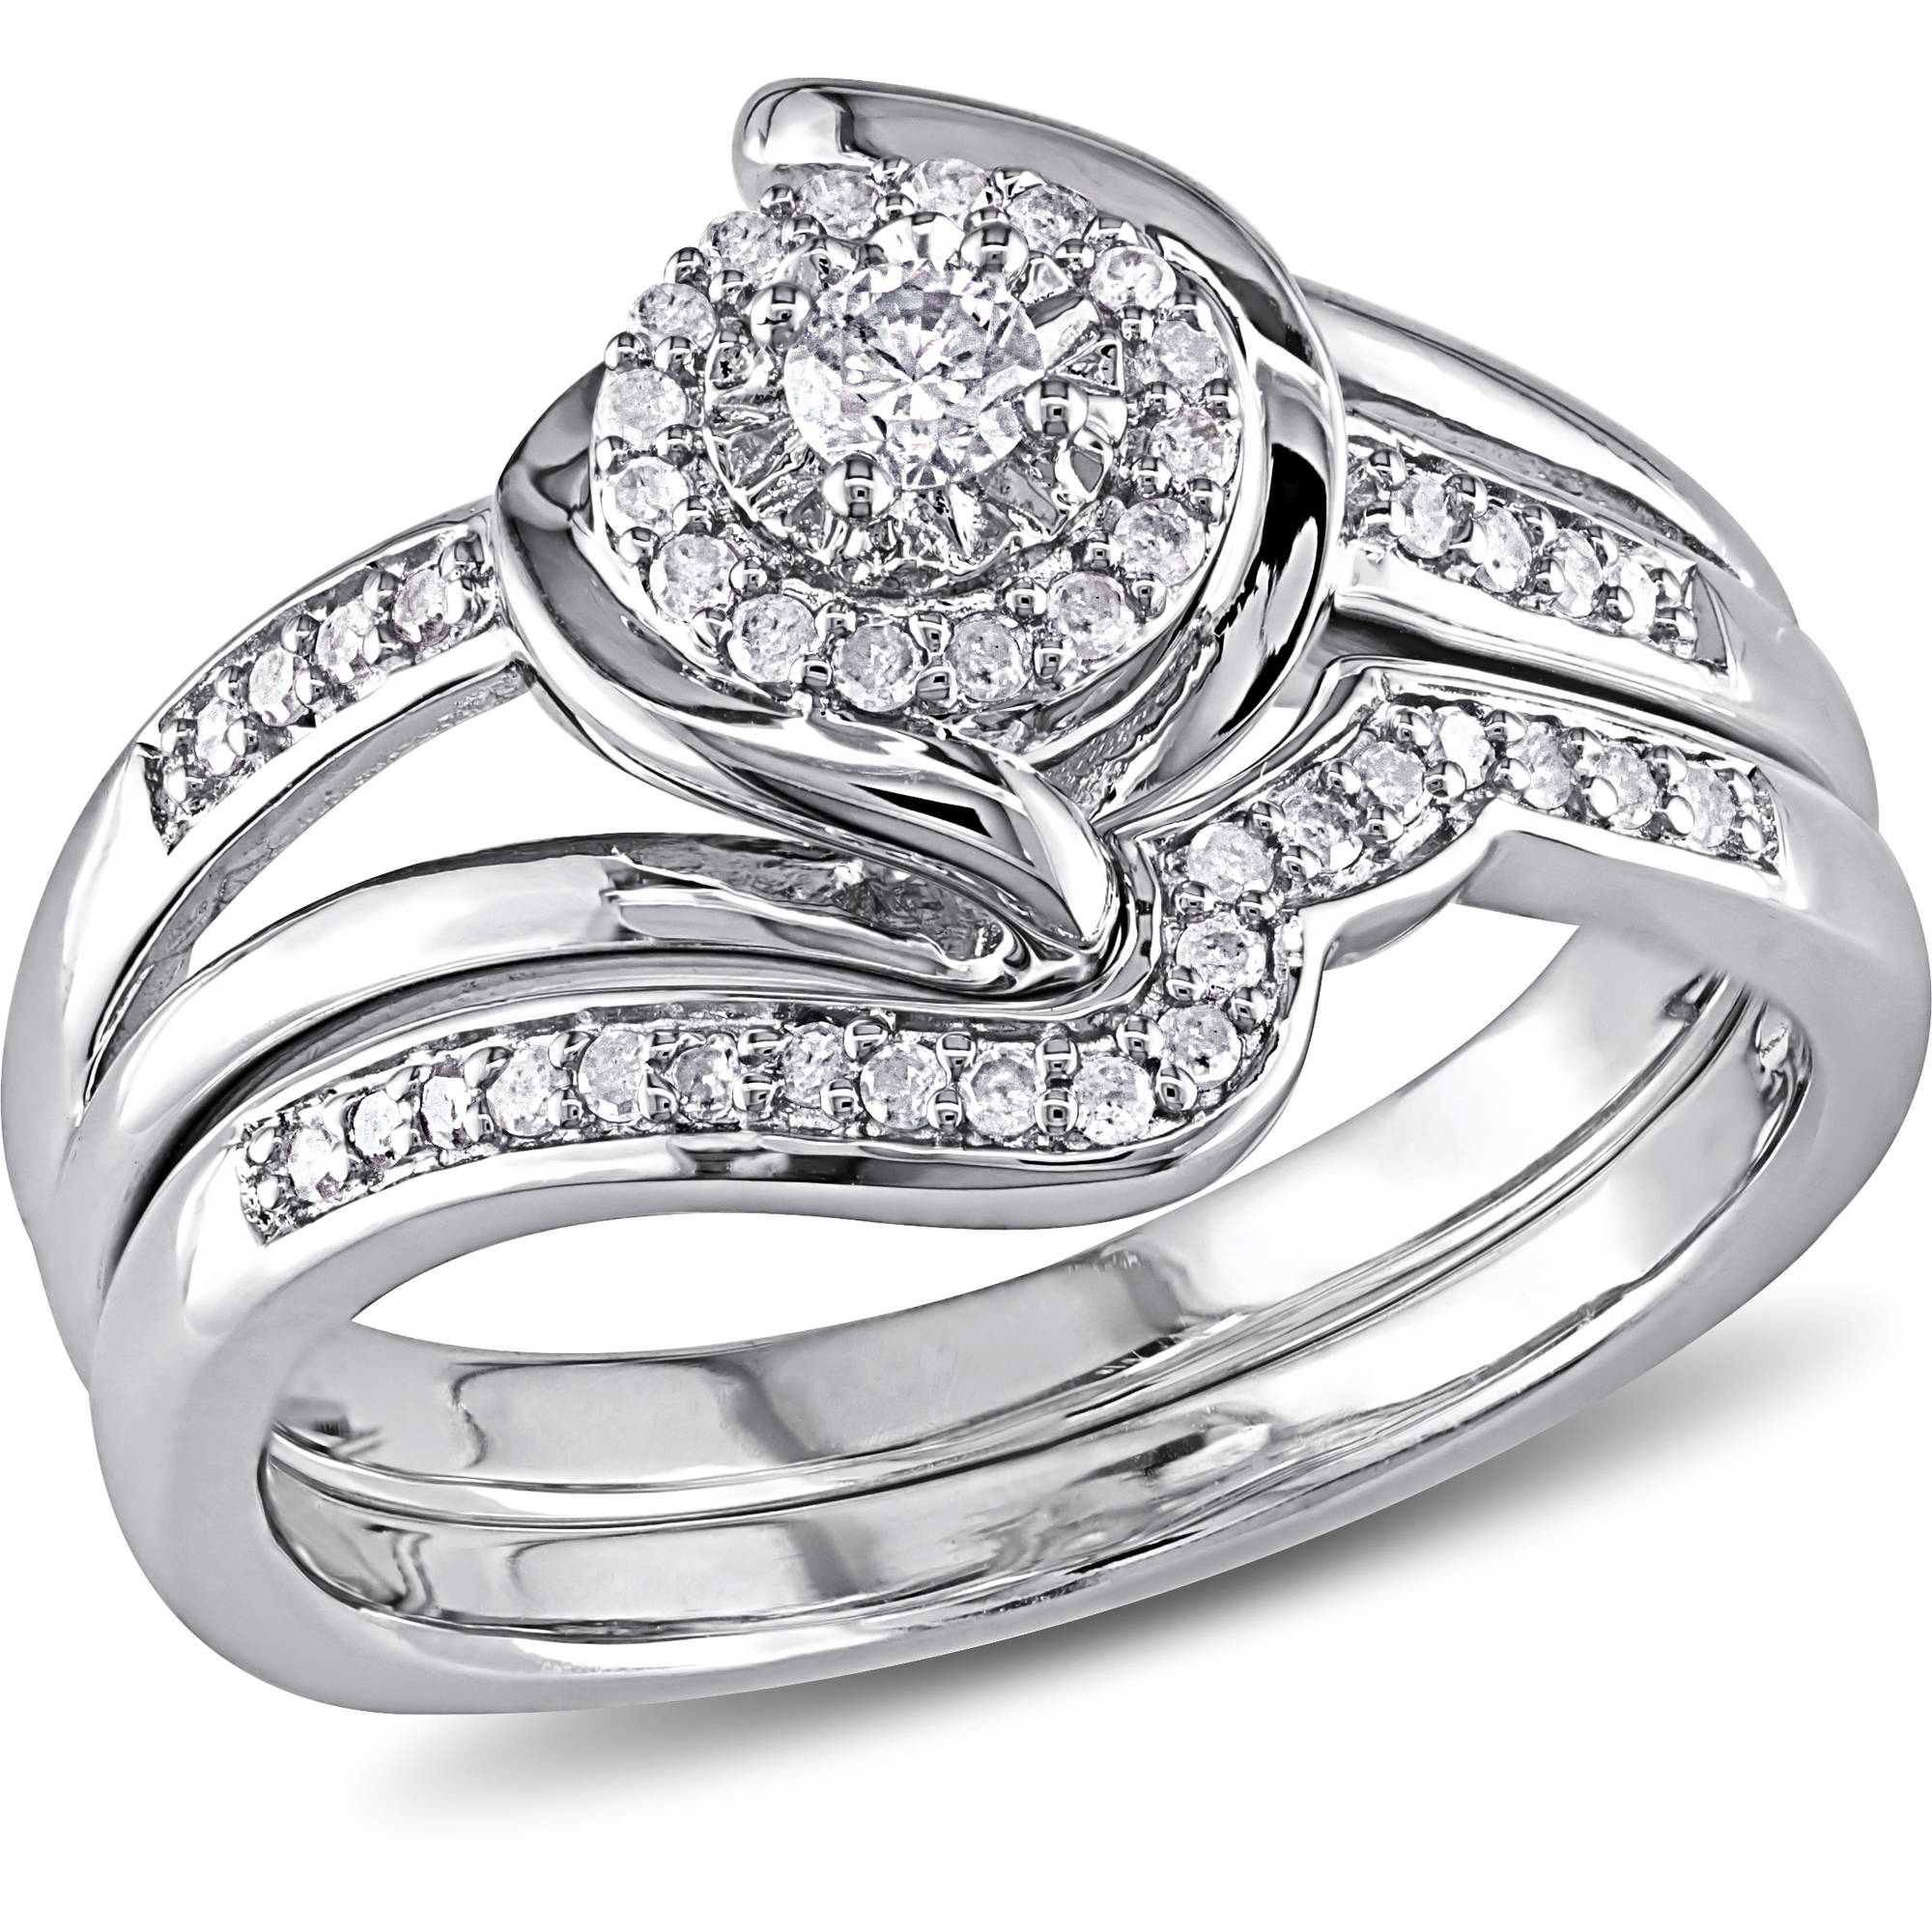 diamond woman index ring bridal engagement cuts fashion styles rings should wedding know square hbz every cut best